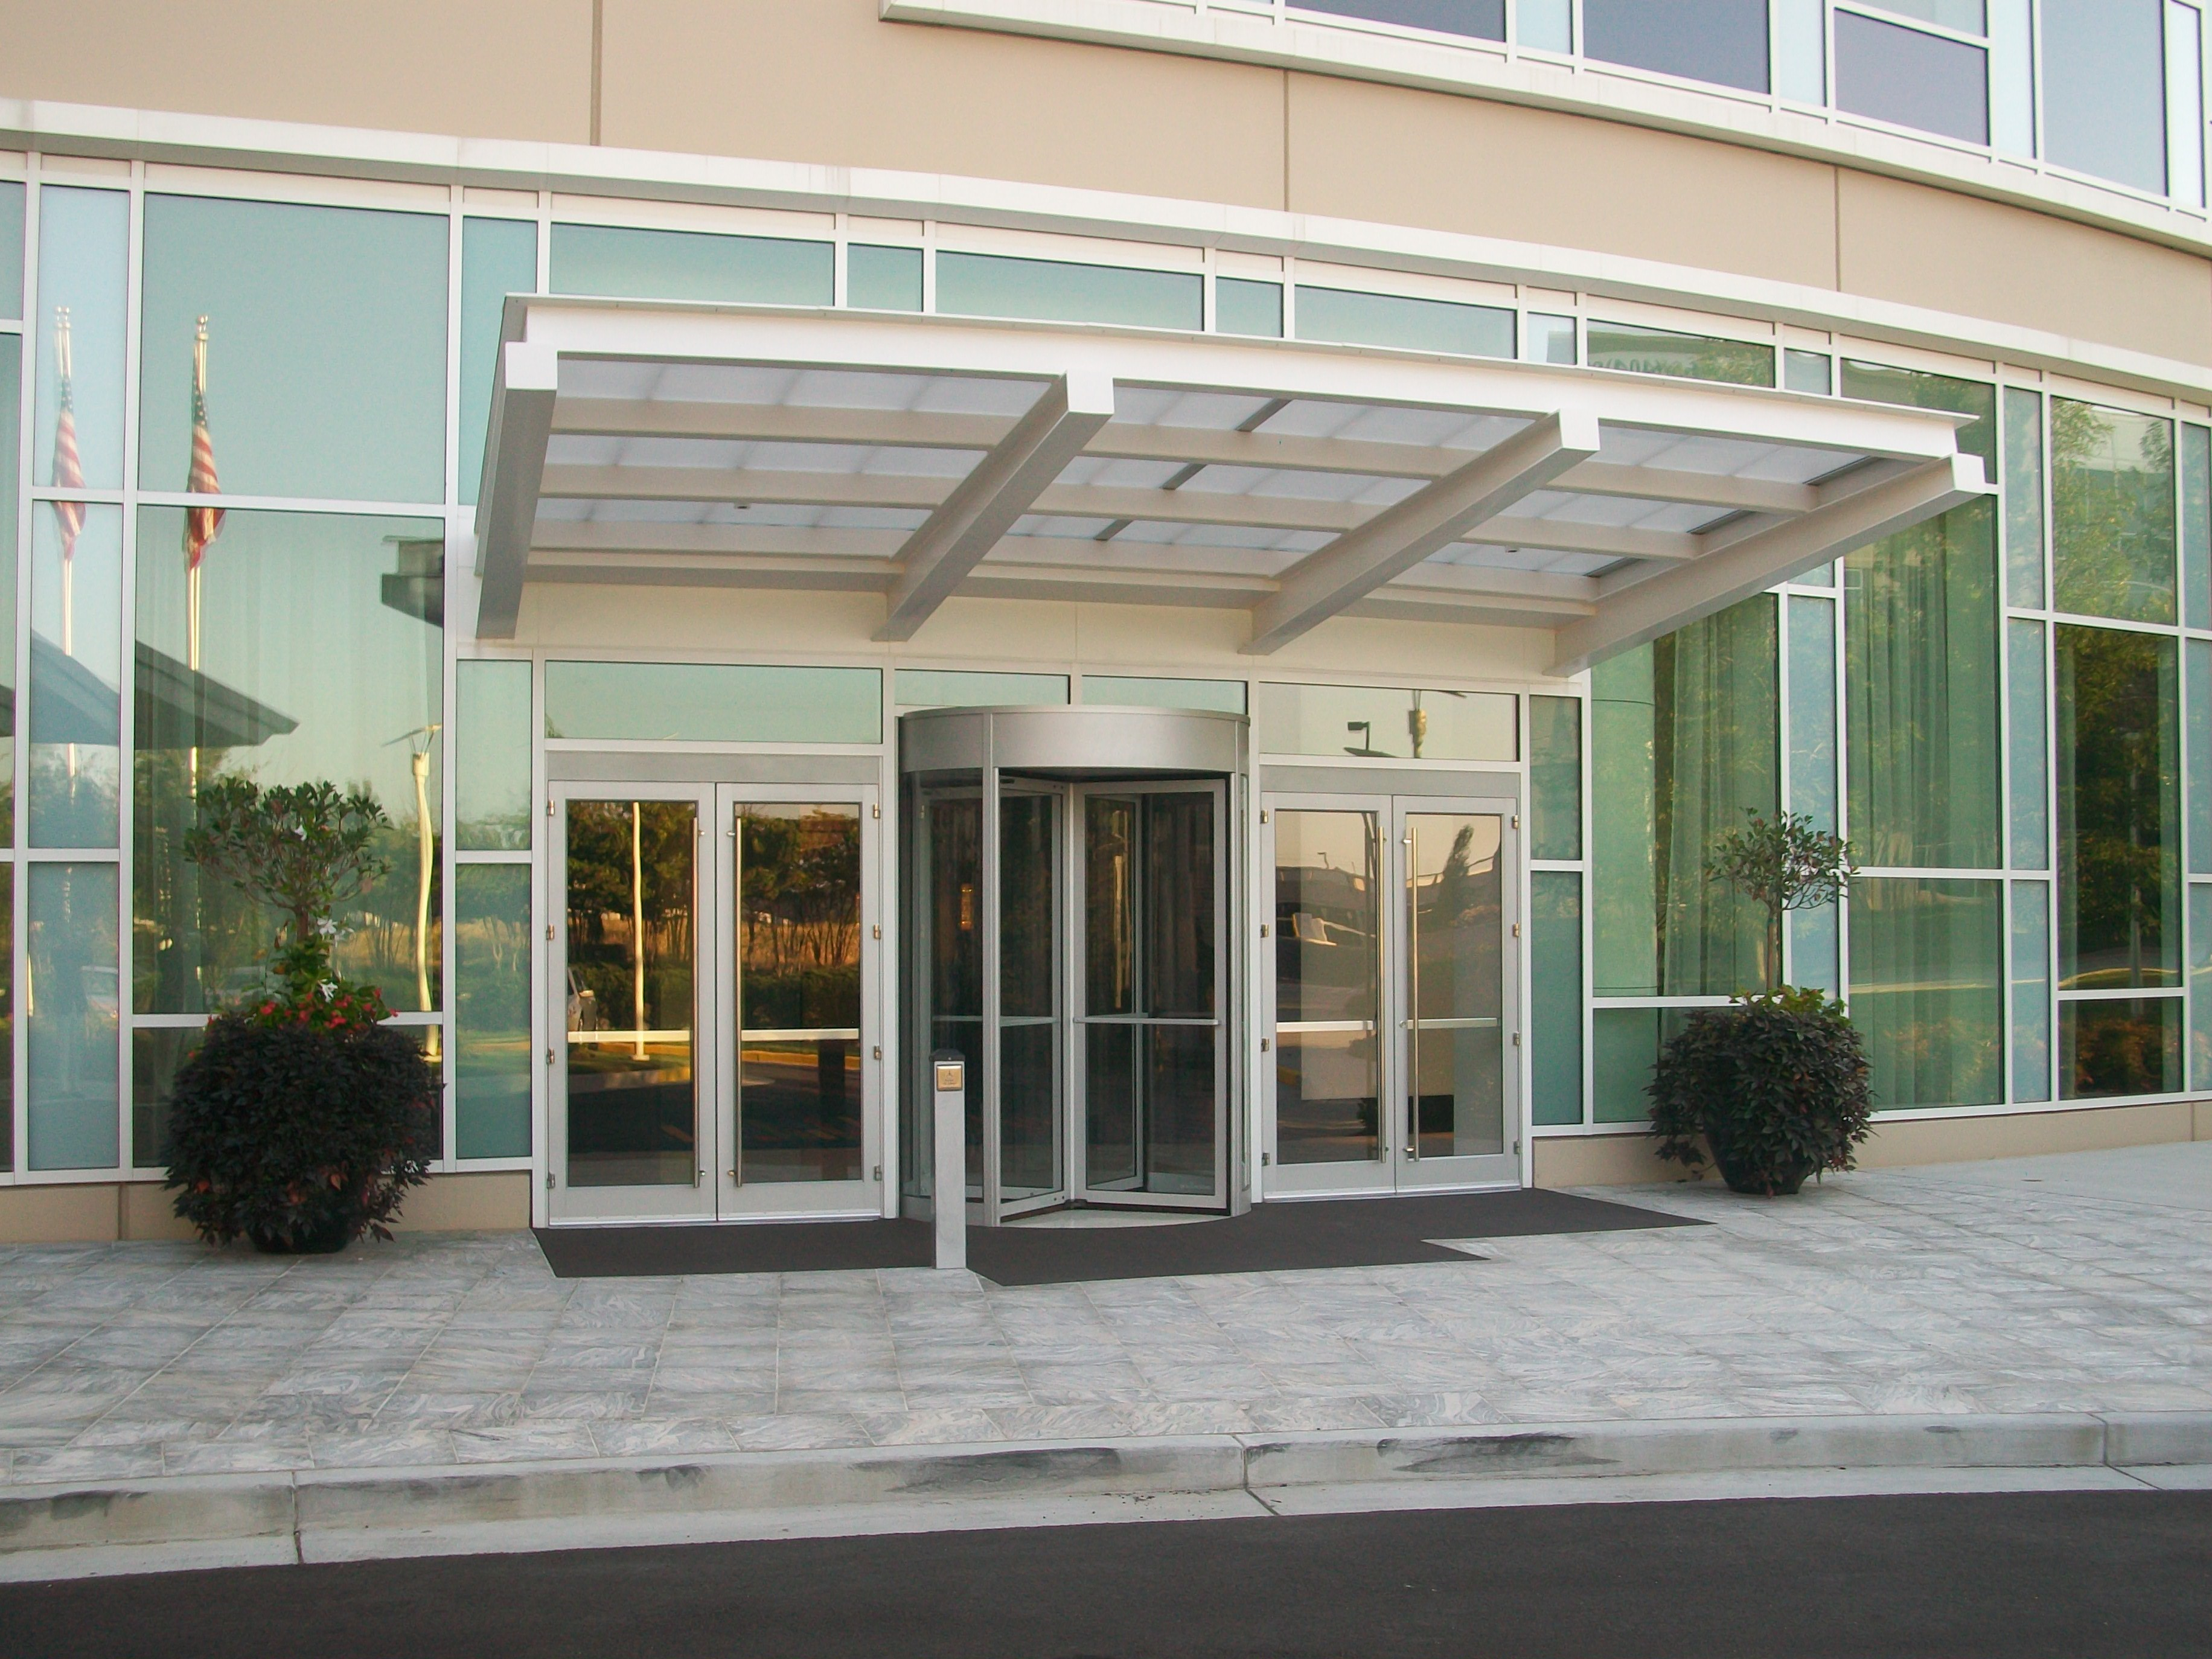 Revolving Doors Outside a Building Require a Protective Overhang